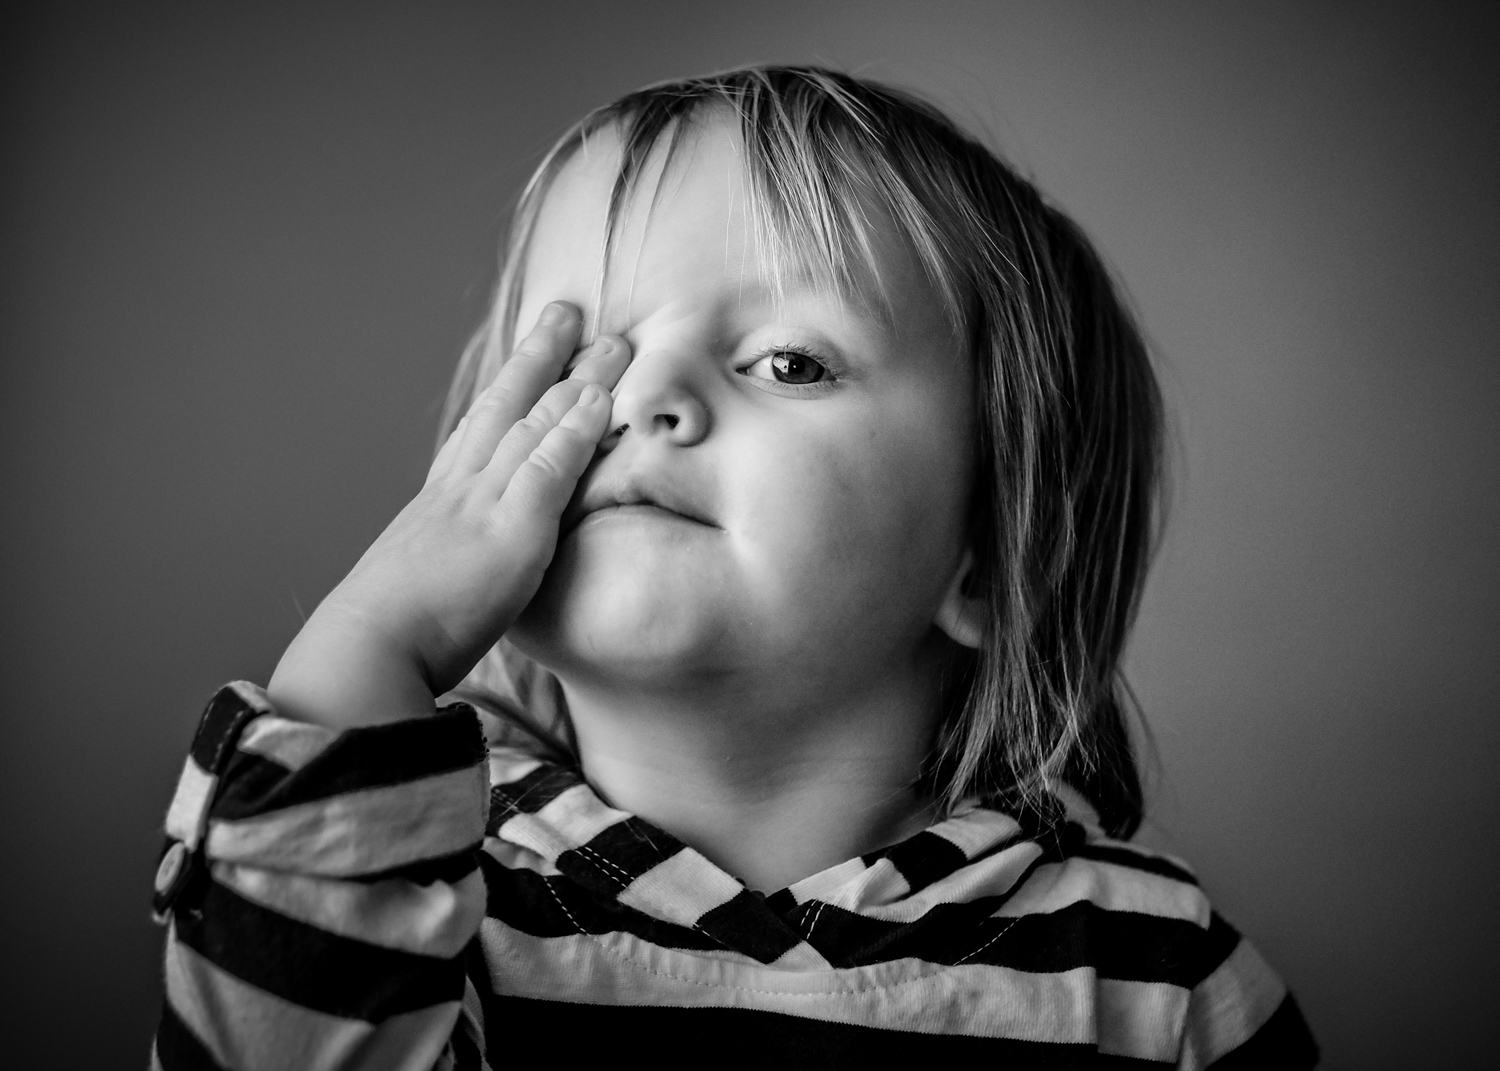 Image: If you need inspiration toward growth and learning as a photographer, look to the toddler. Th...